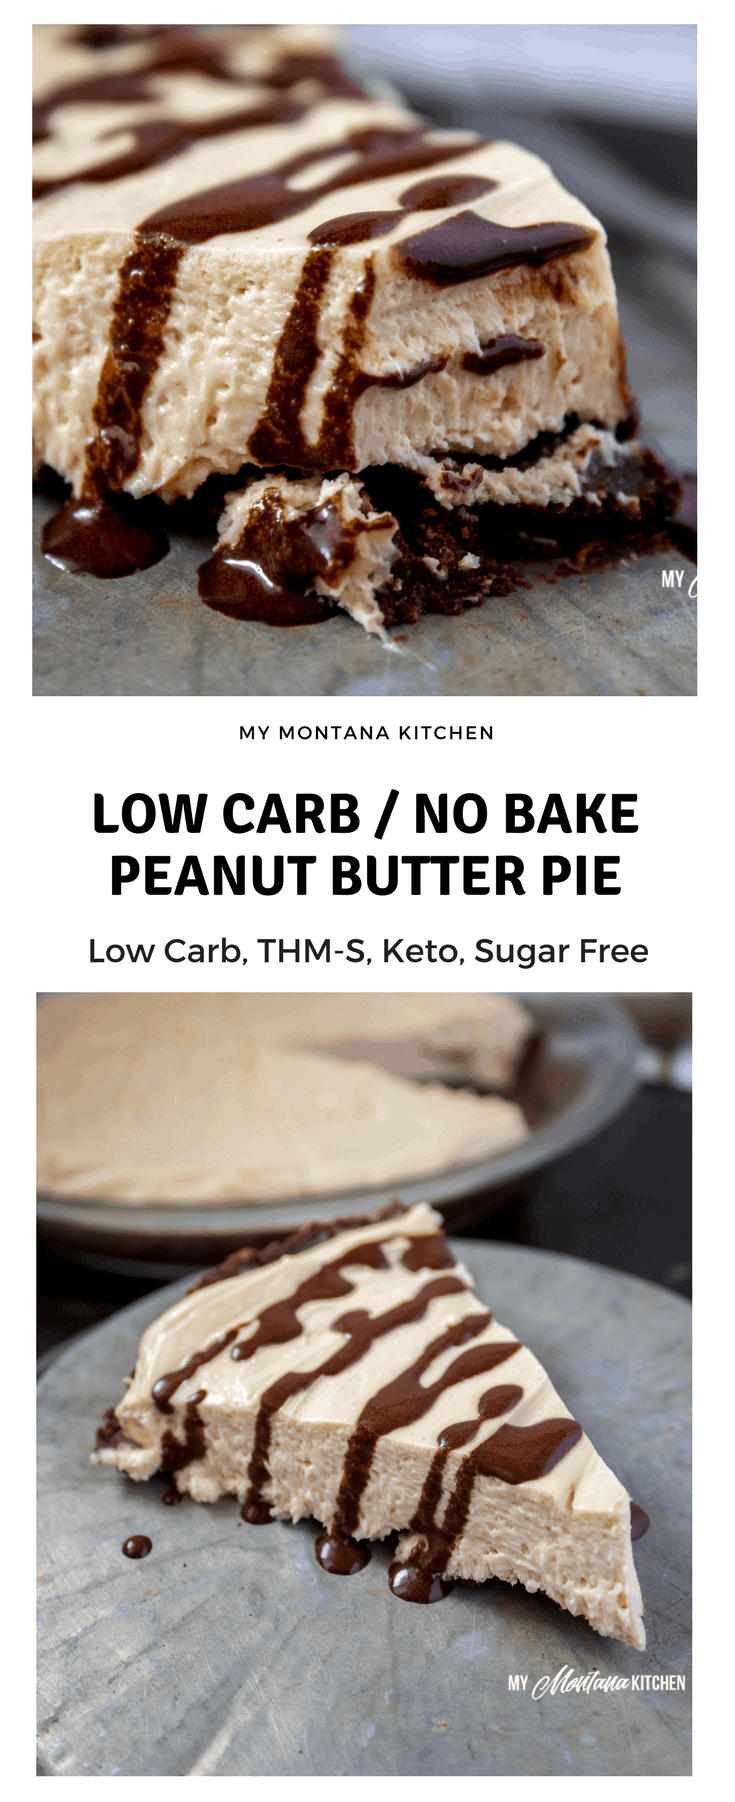 No Bake Low Carb Peanut Butter Pie (THM-S, Keto, Sugar Free, Gluten Free) #trimhealthymama #thm #lowcarb #keto #sugarfree #peanutbutter #chocolate #pie #peanutbutterpie